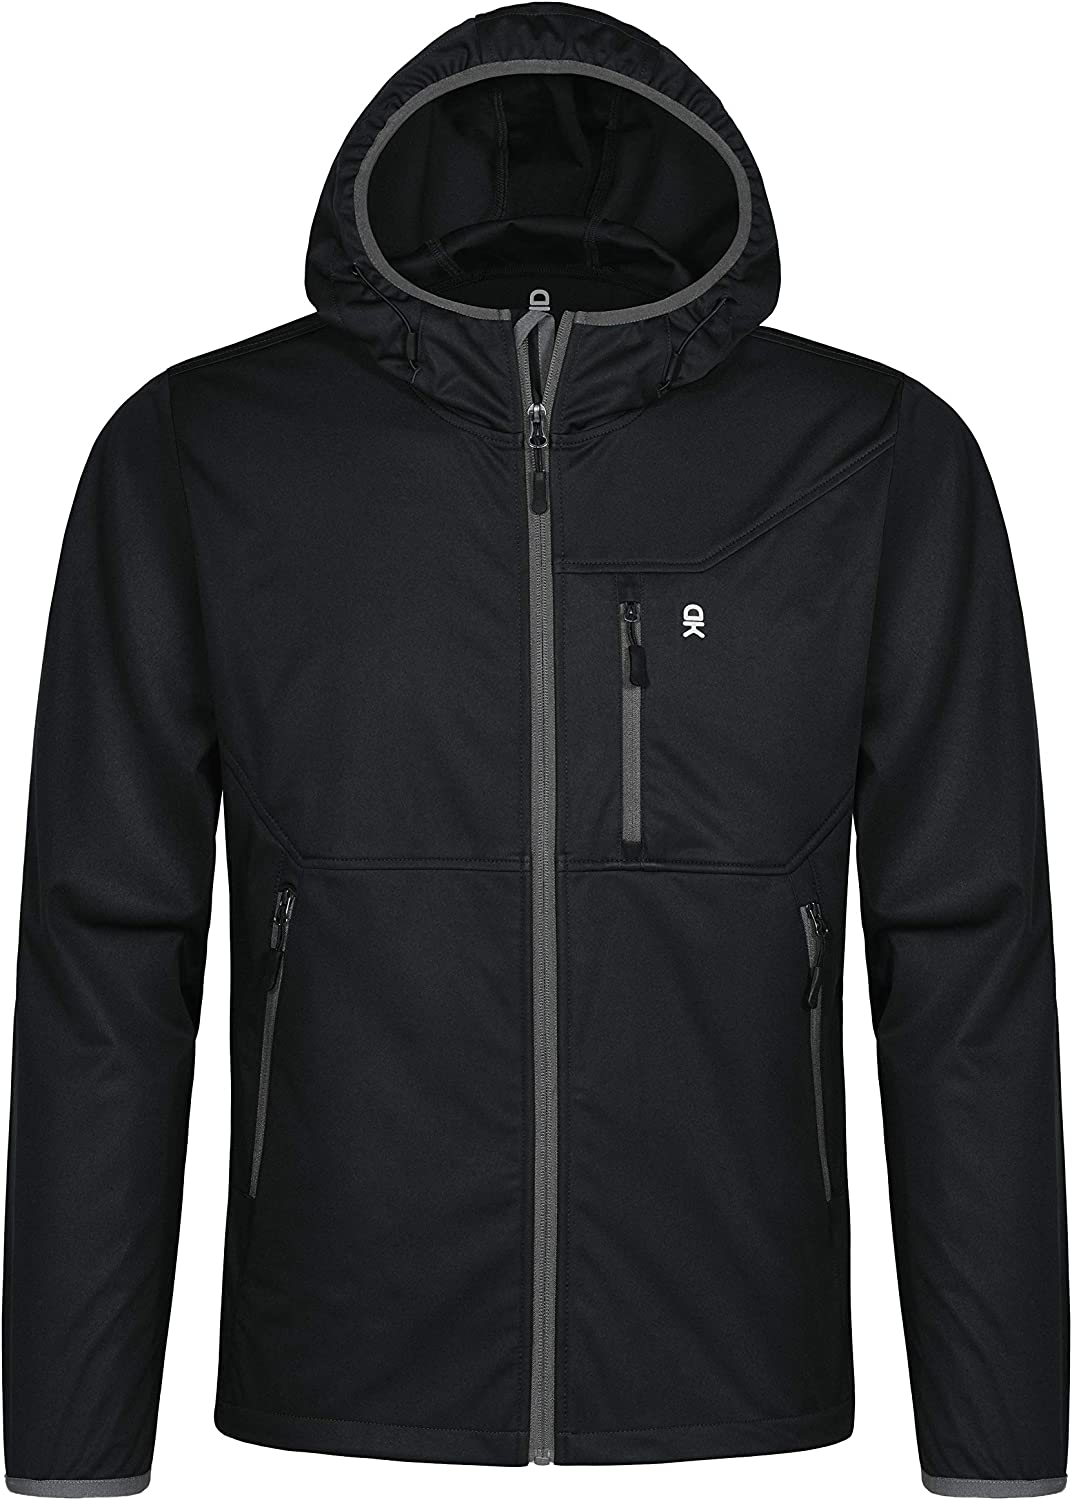 Water Repellent Windproof Little Donkey Andy Men/'s Lightweight Hooded Softshell Jacket for Travel Hiking Running